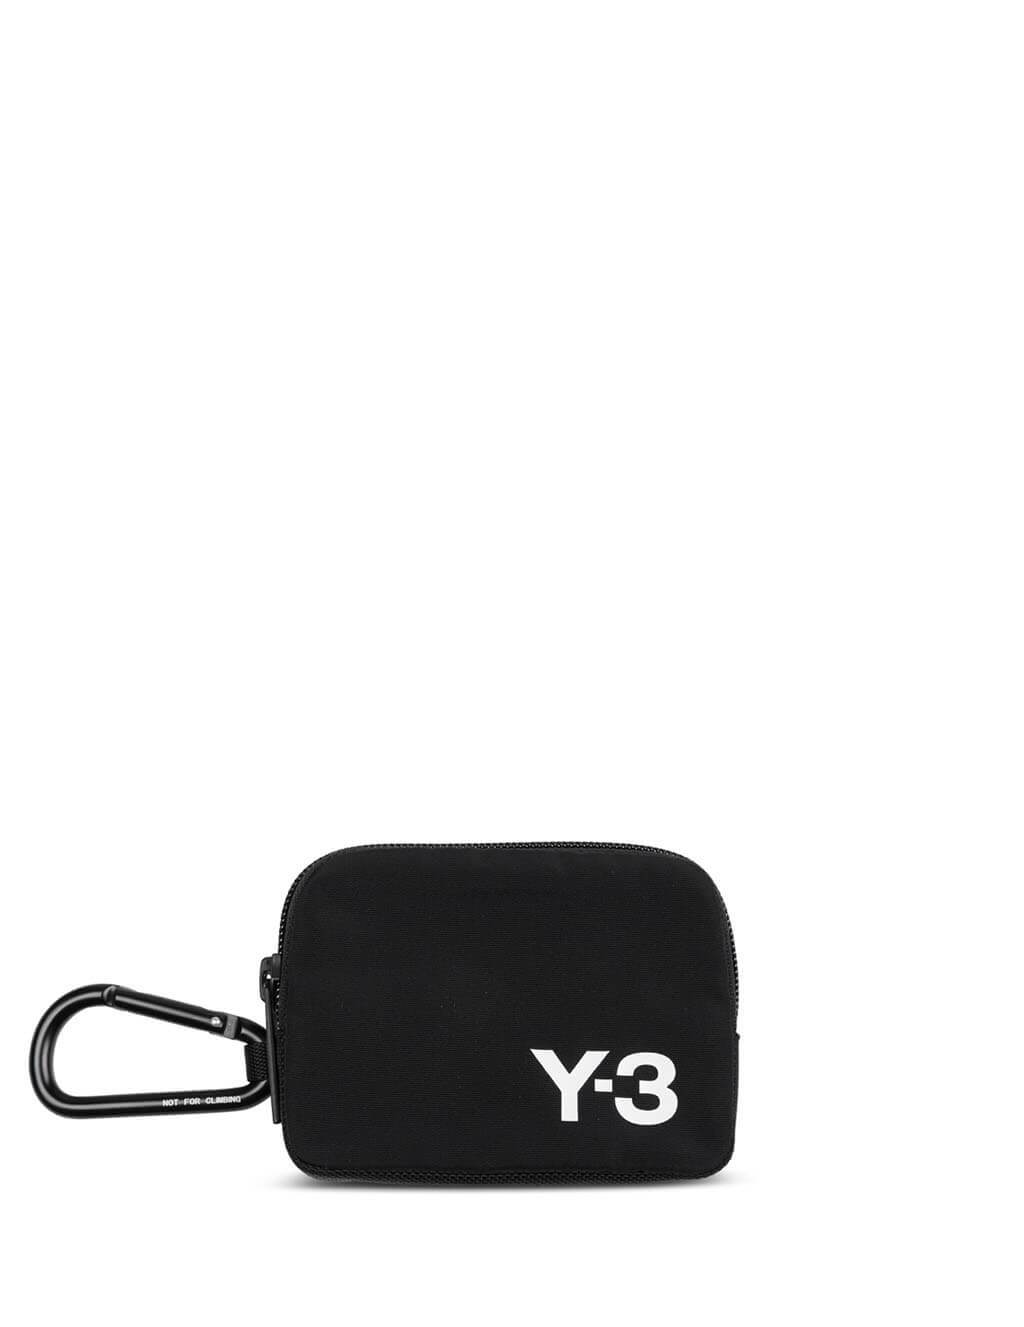 Y-3 CARABINER POUCH